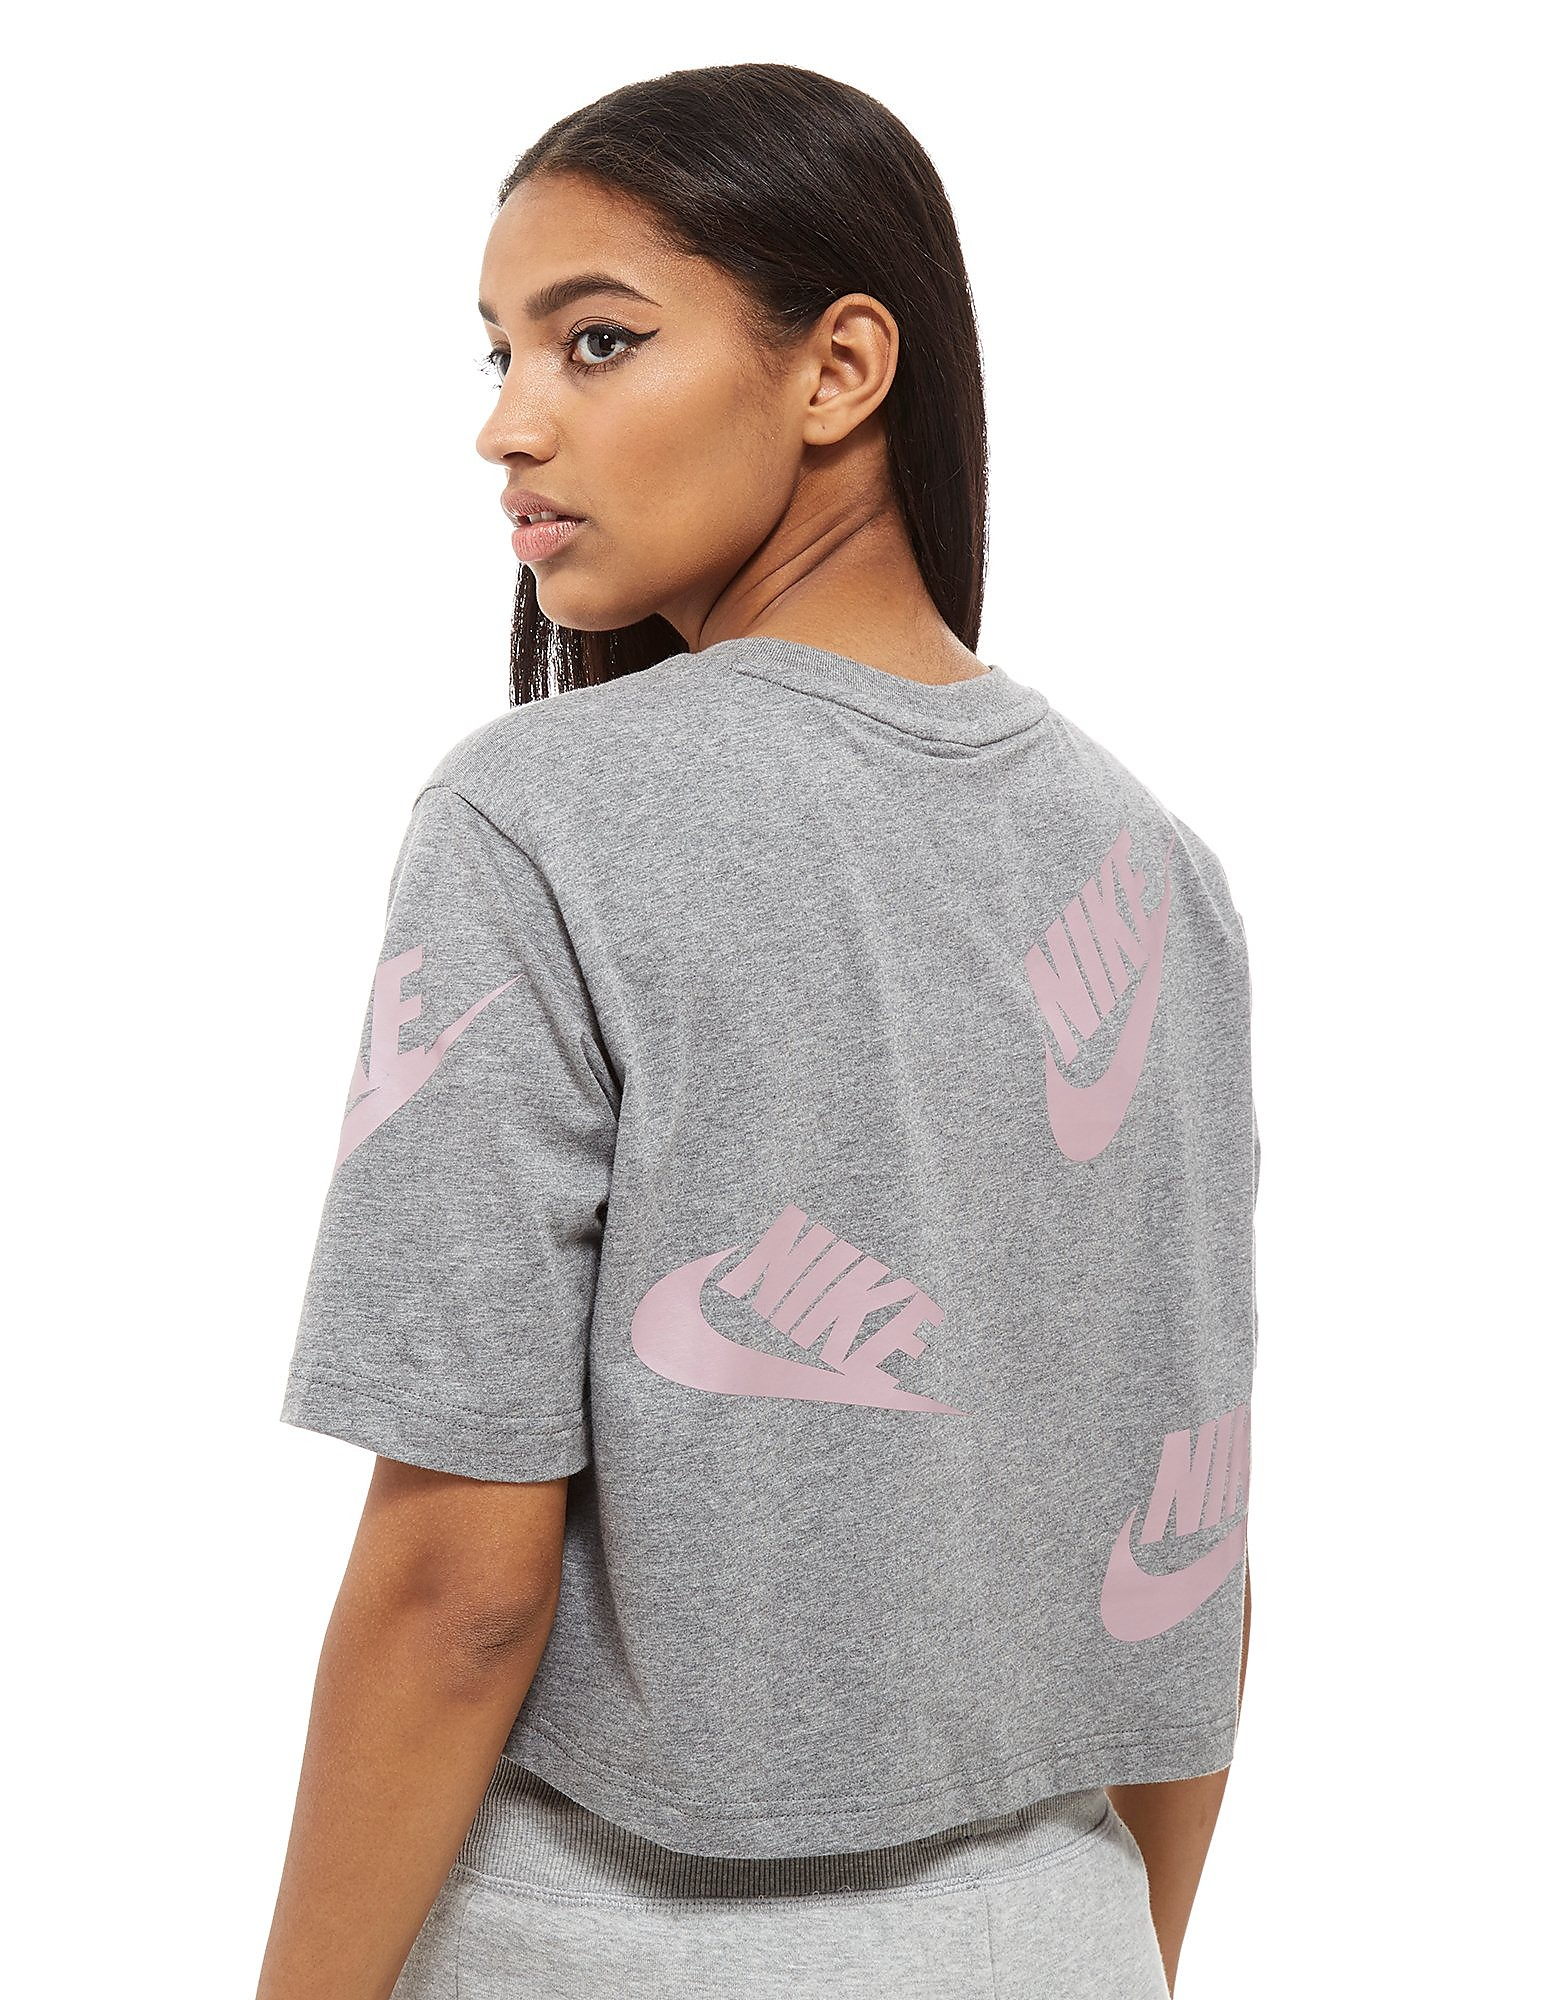 Nike Futura All-Over-Print Crop Top